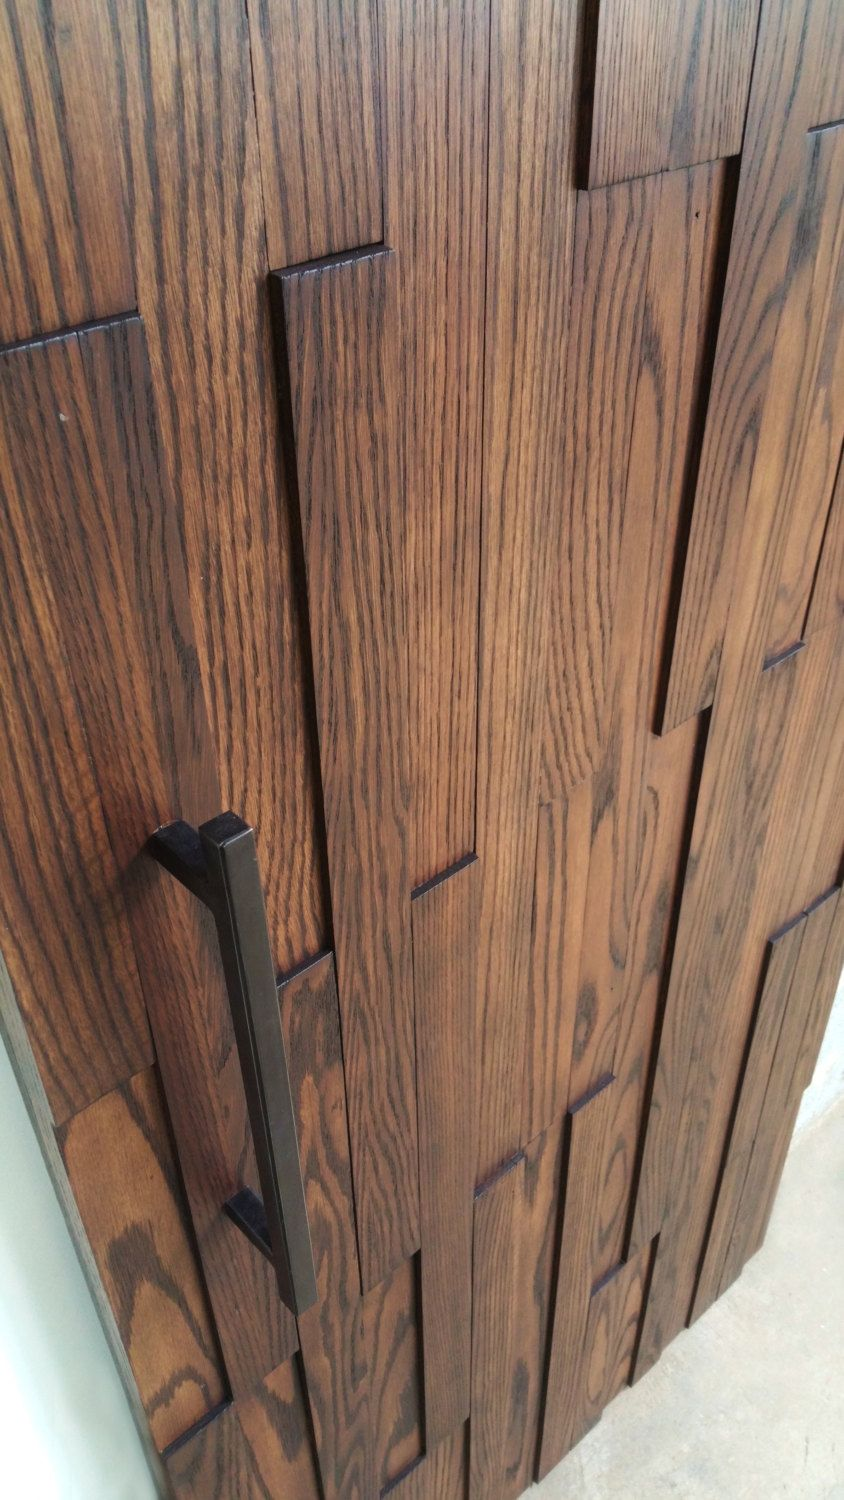 Modern Oak Barn Door - Solid Wood - Home Decor in 2020 ...